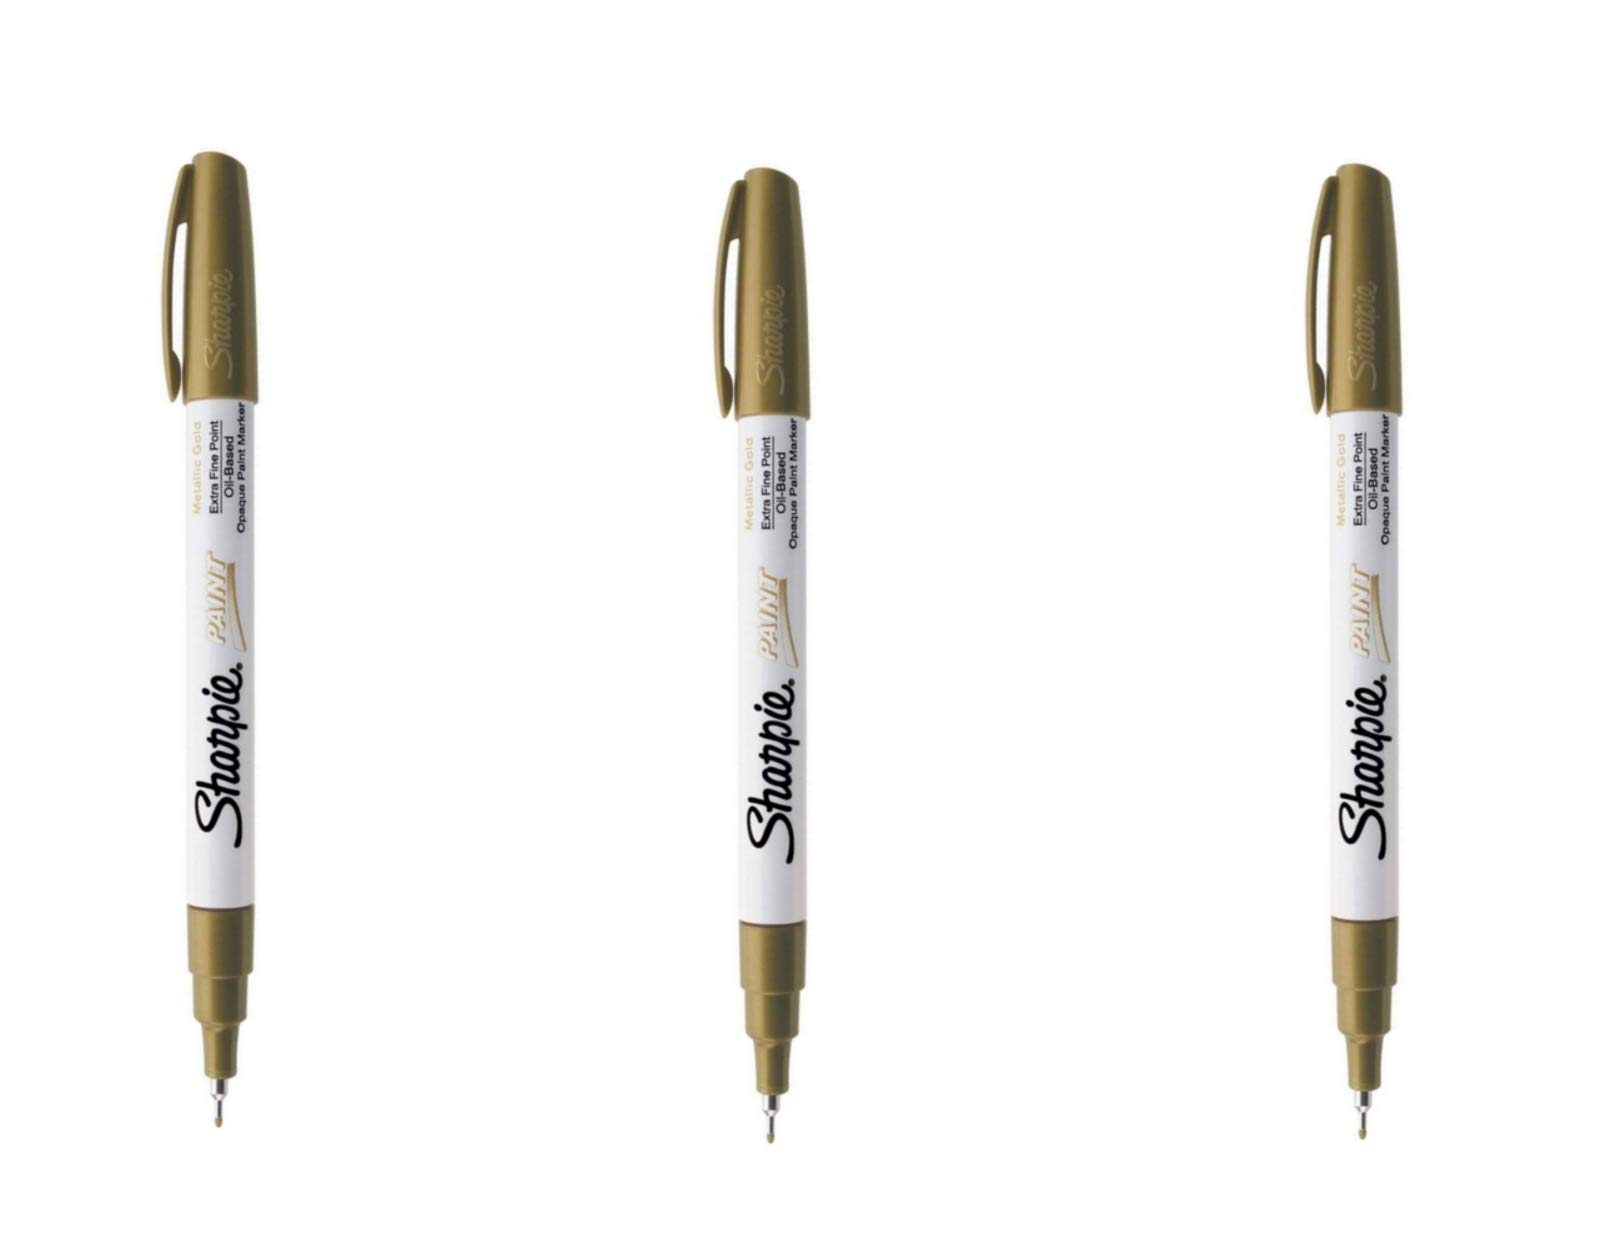 Sharpie Oil-Based Paint Marker, Extra Fine Point, Gold; Works On Virtually Any Surface - Metal, Pottery, Wood, Rubber, Glass, Plastic, Stone, and More; Pack of 3 (35532)